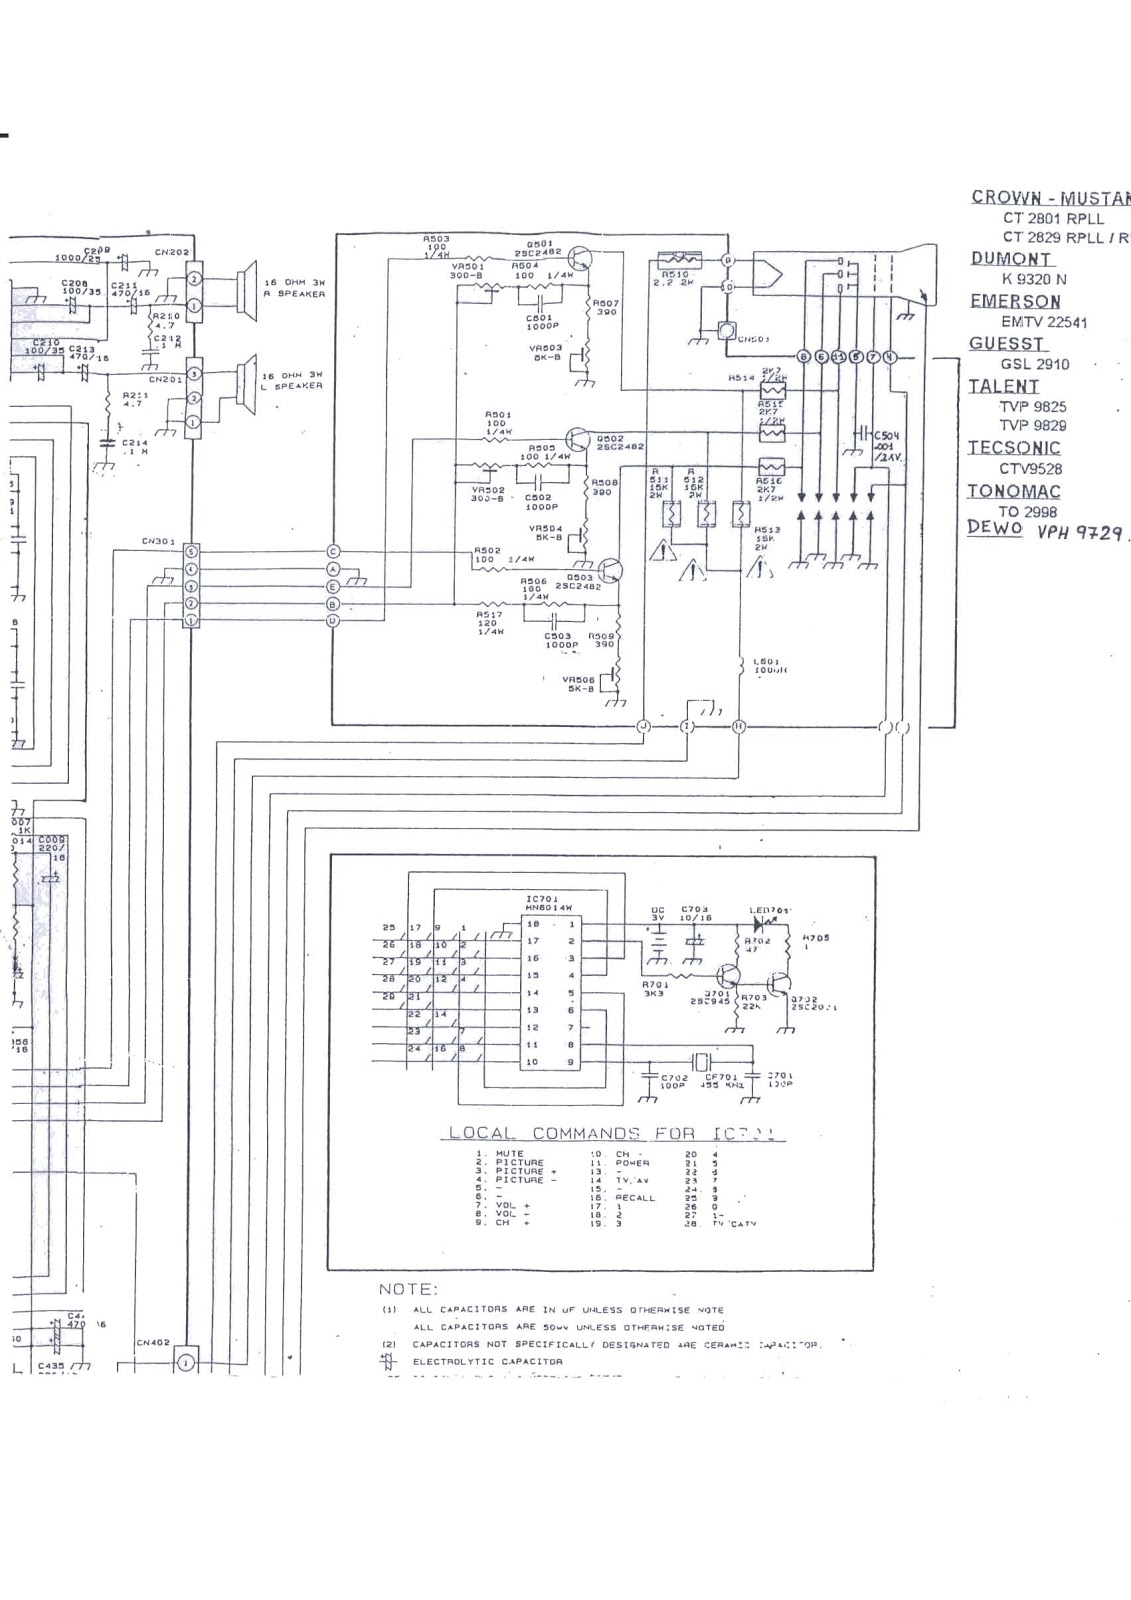 Ford 4630 Tractor Wiring Diagram Sel Circuit 7710 3000 Approx Free Guide Manual Expert Schematics On Parts